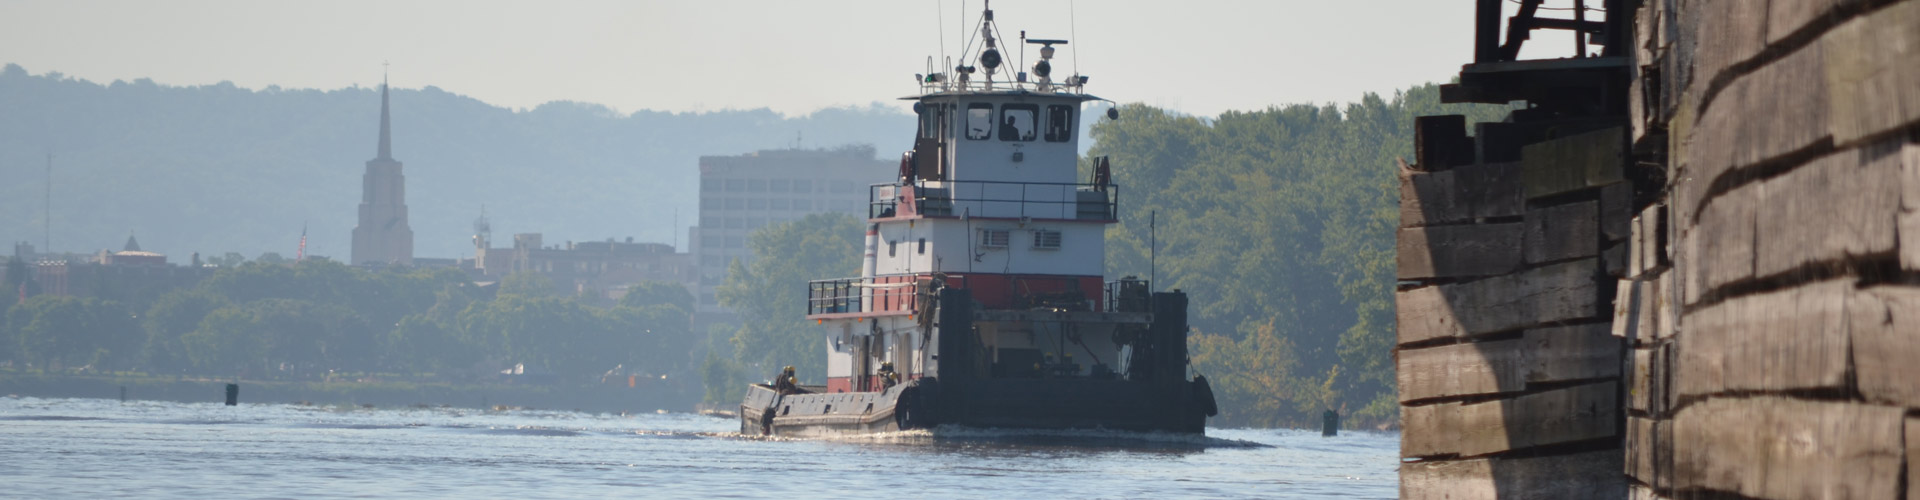 marine assists, bridge assists, lock and dam assists, lock assists, lock 8, la crosse, wi, lock 7 assists